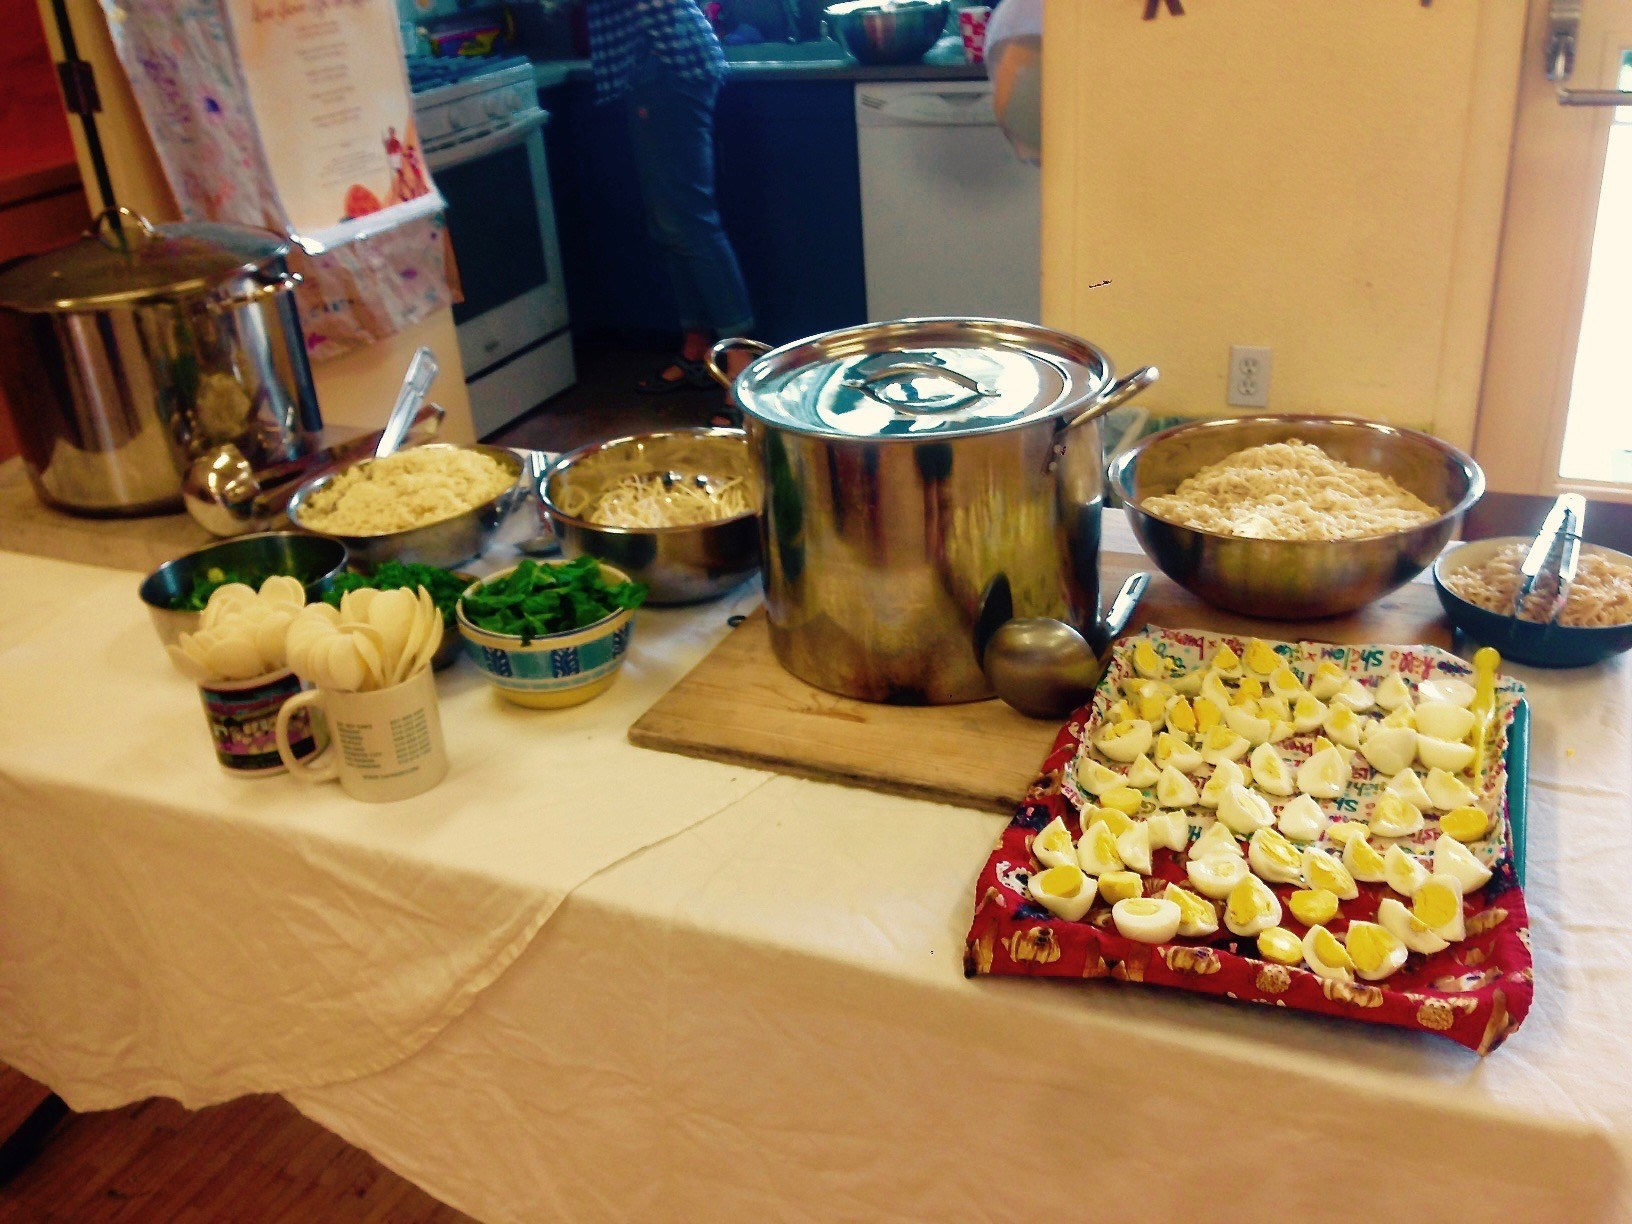 A counter with a large metal pot, ingredients, and cups of spoons